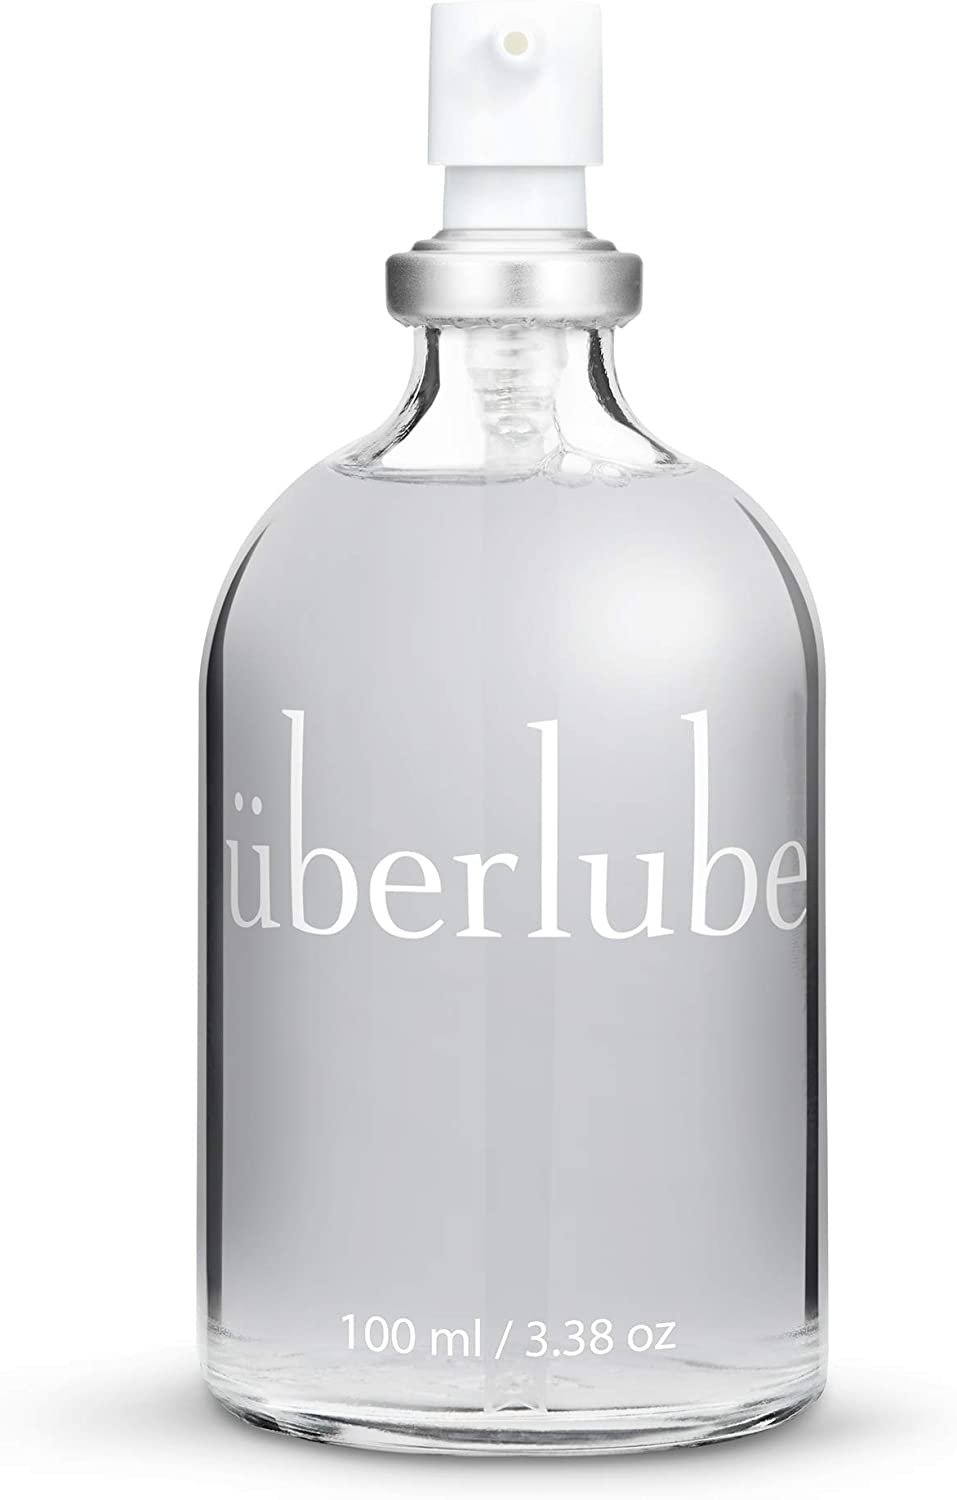 Amazon.com: Überlube Luxury Lubricant   Latex-Safe Natural Silicone Lube with Vitamin E   Unscented, Flavorless, Zero Residue, Works Underwater - 100ml: Health & Personal Care